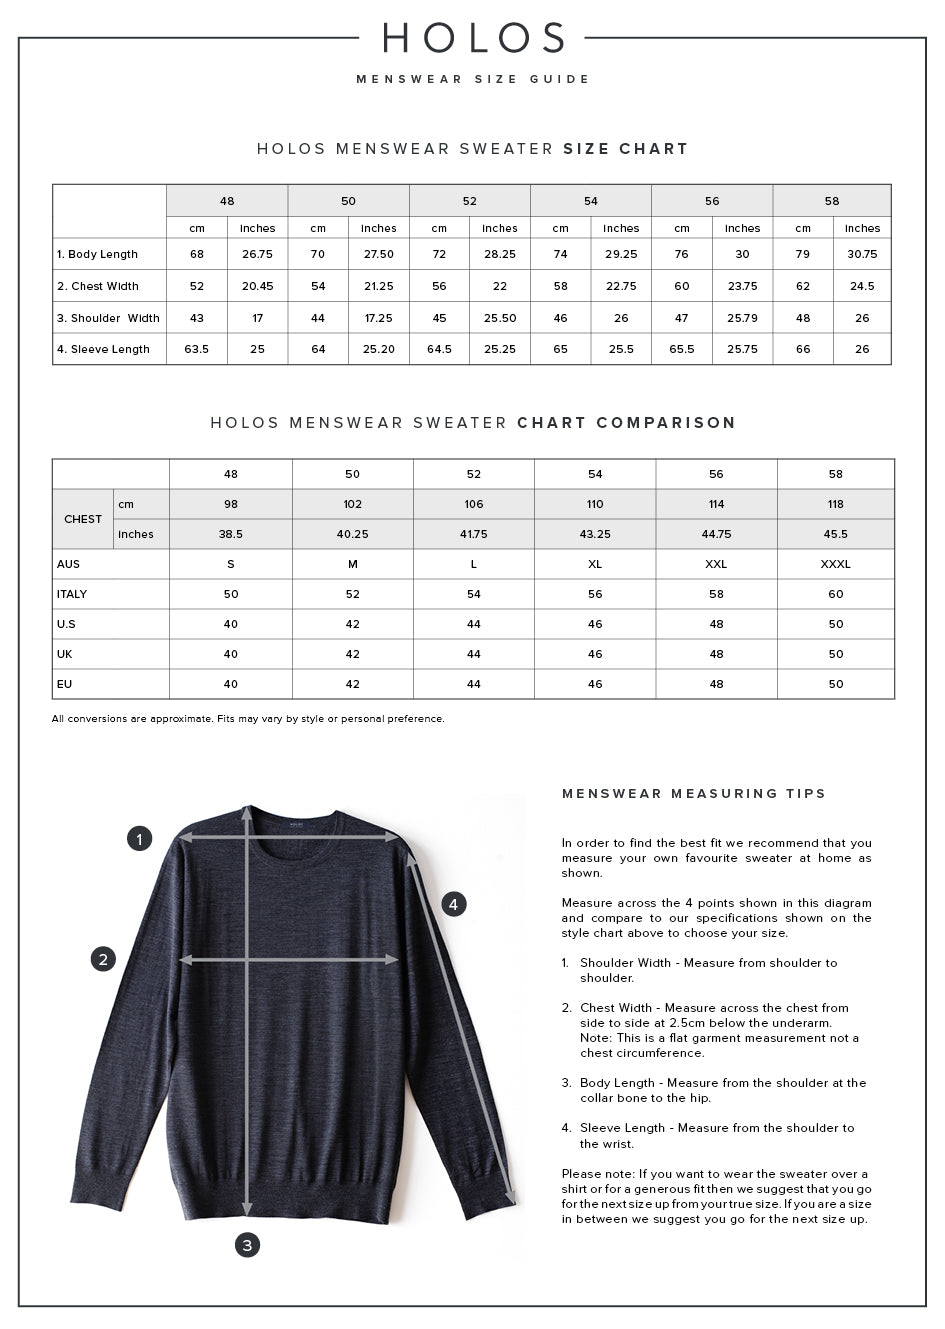 HOLOS Men's Sweater Size Guide